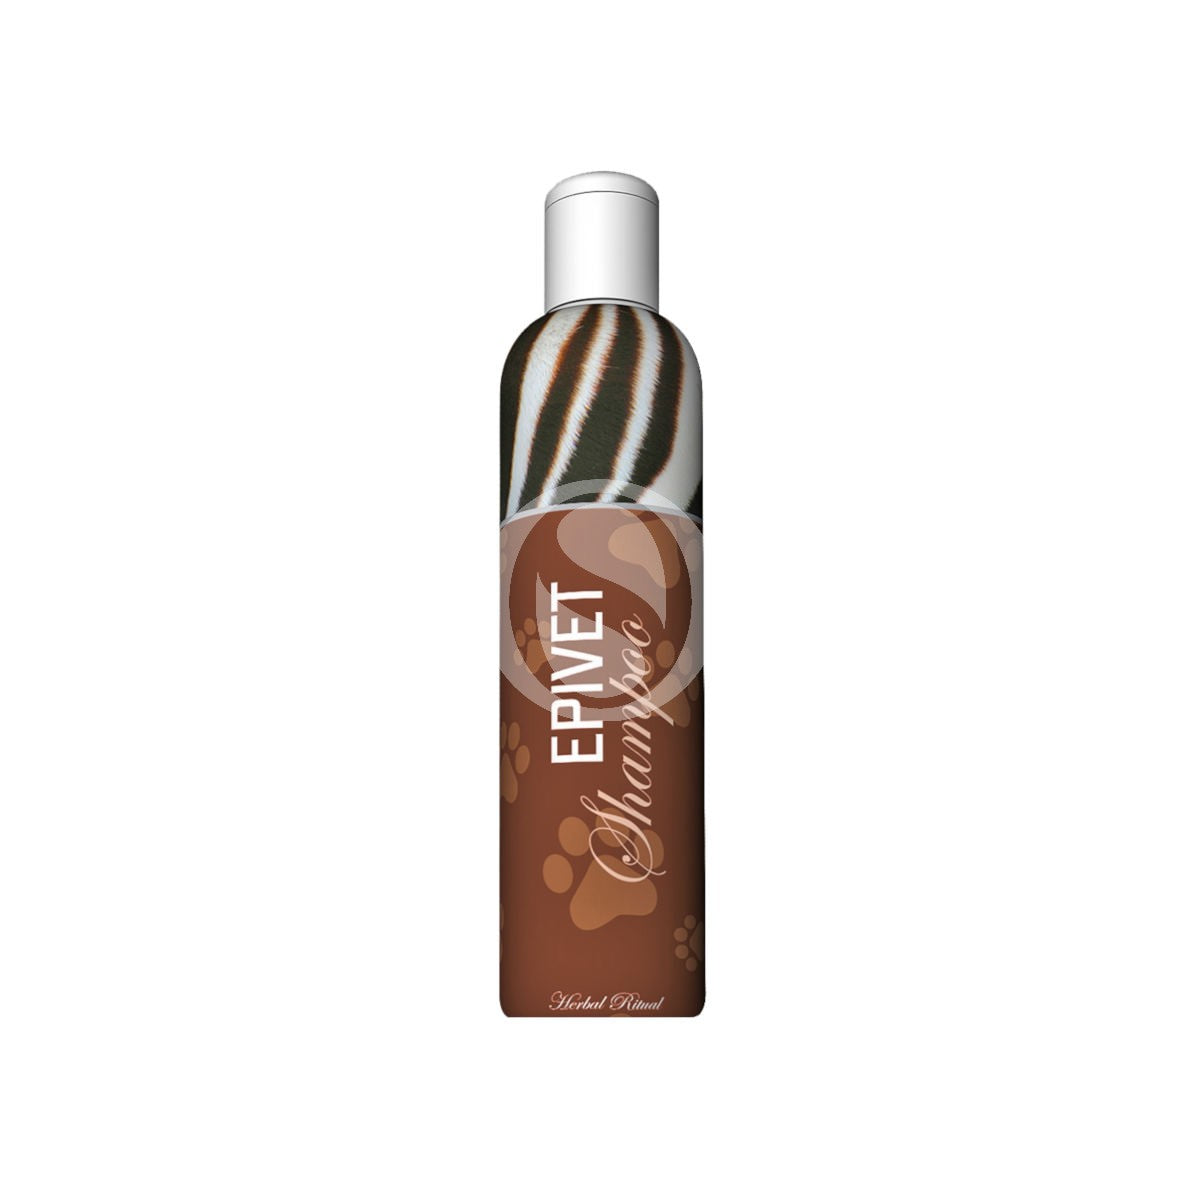 EPIVET Shampoo 200ml